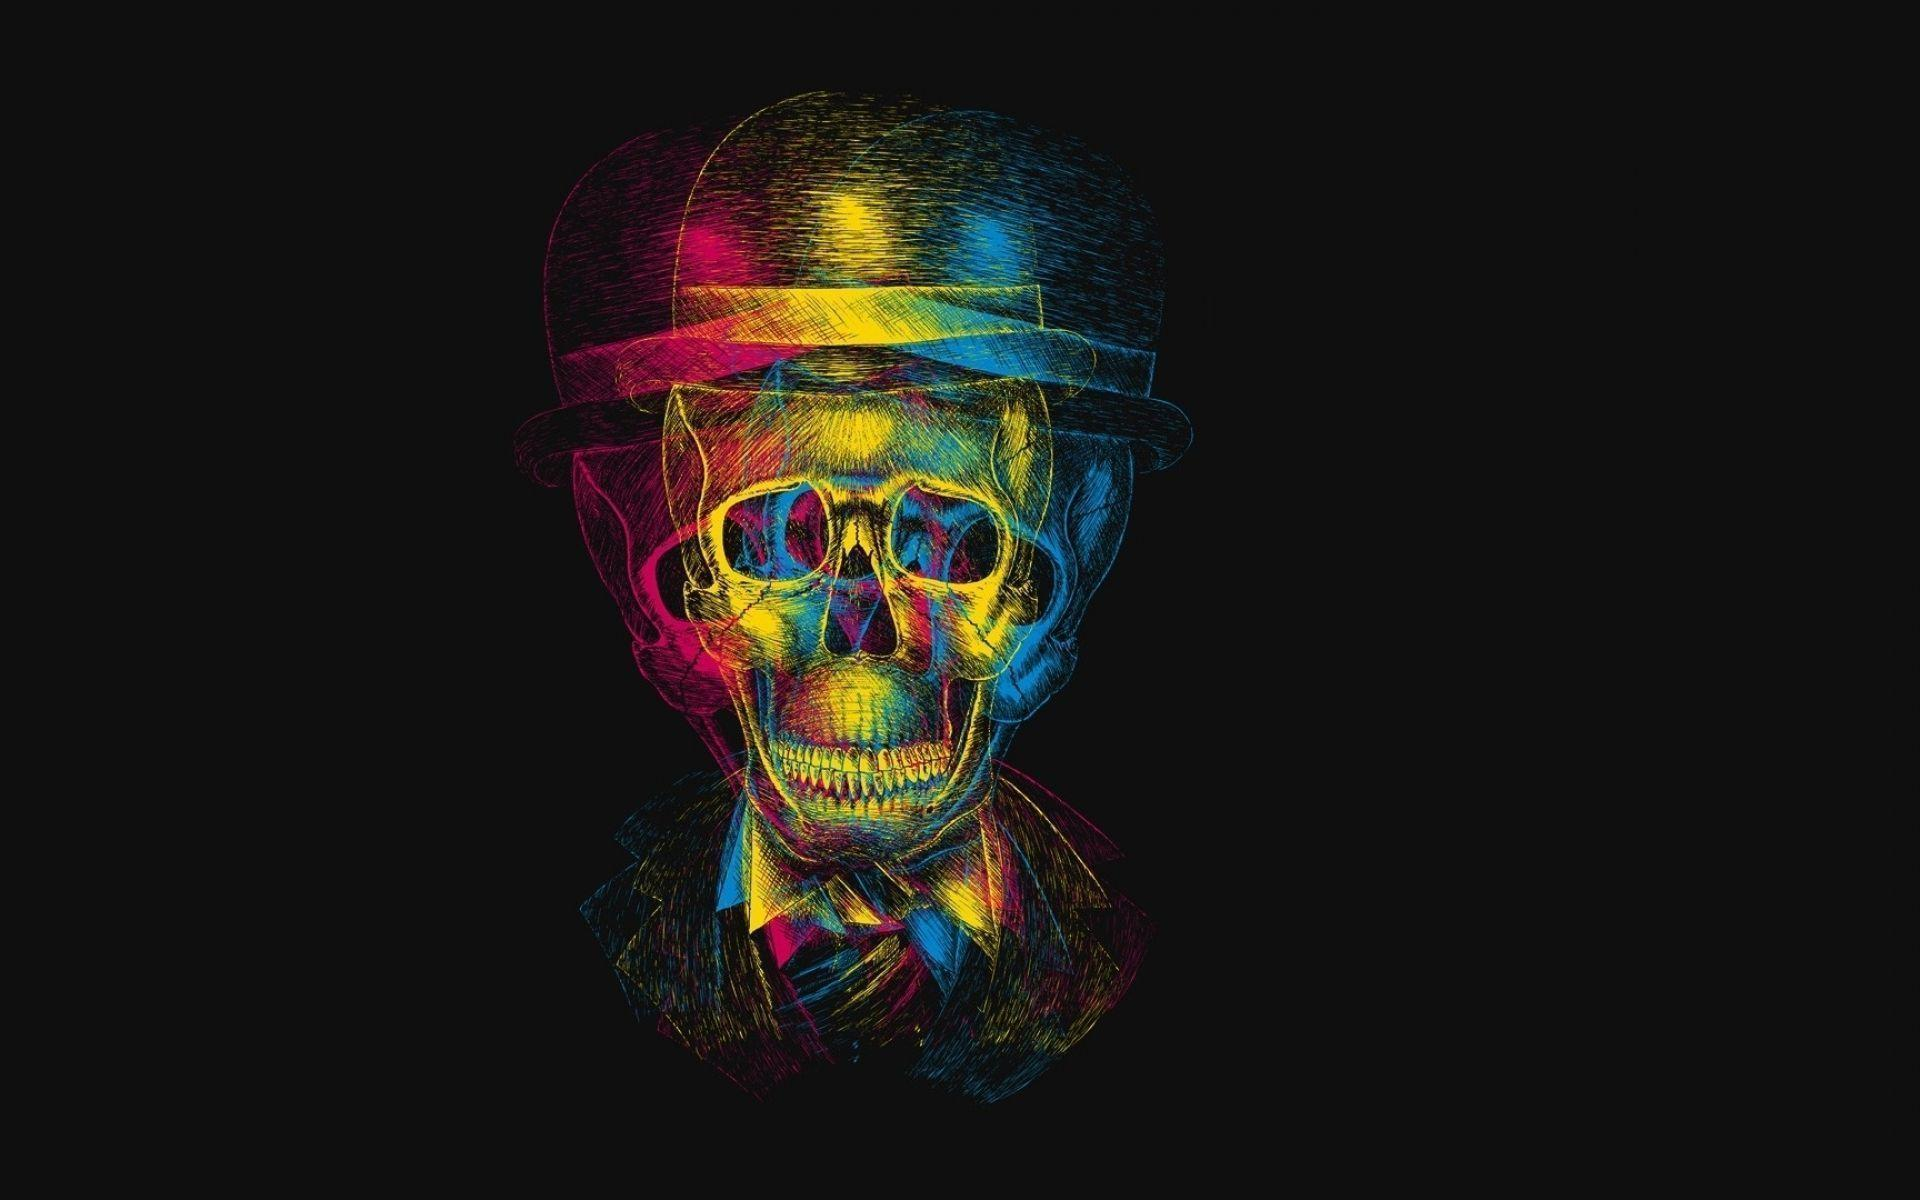 Abstract Skull Wallpapers   Wallpaper Cave Skull Wallpapers   Full HD wallpaper search